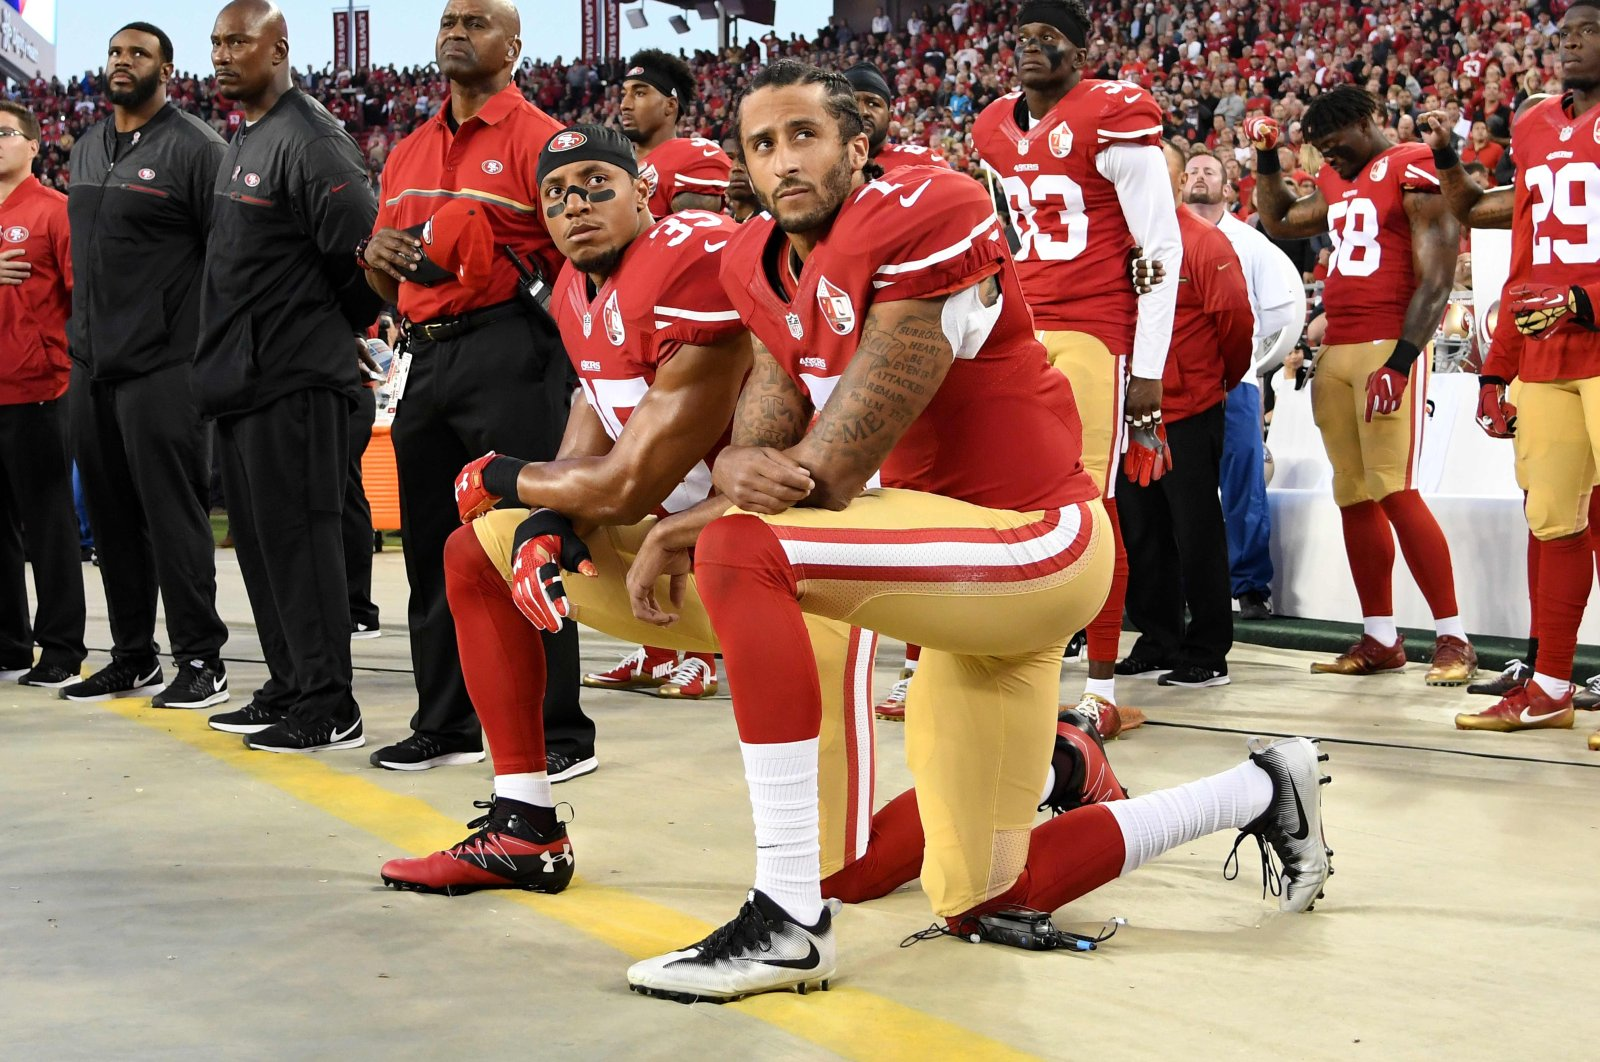 Colin Kaepernick (R) and Eric Reid of the San Francisco 49ers kneel in protest during the national anthem in California, U.S., Sept. 12, 2016. (AFP Photo)